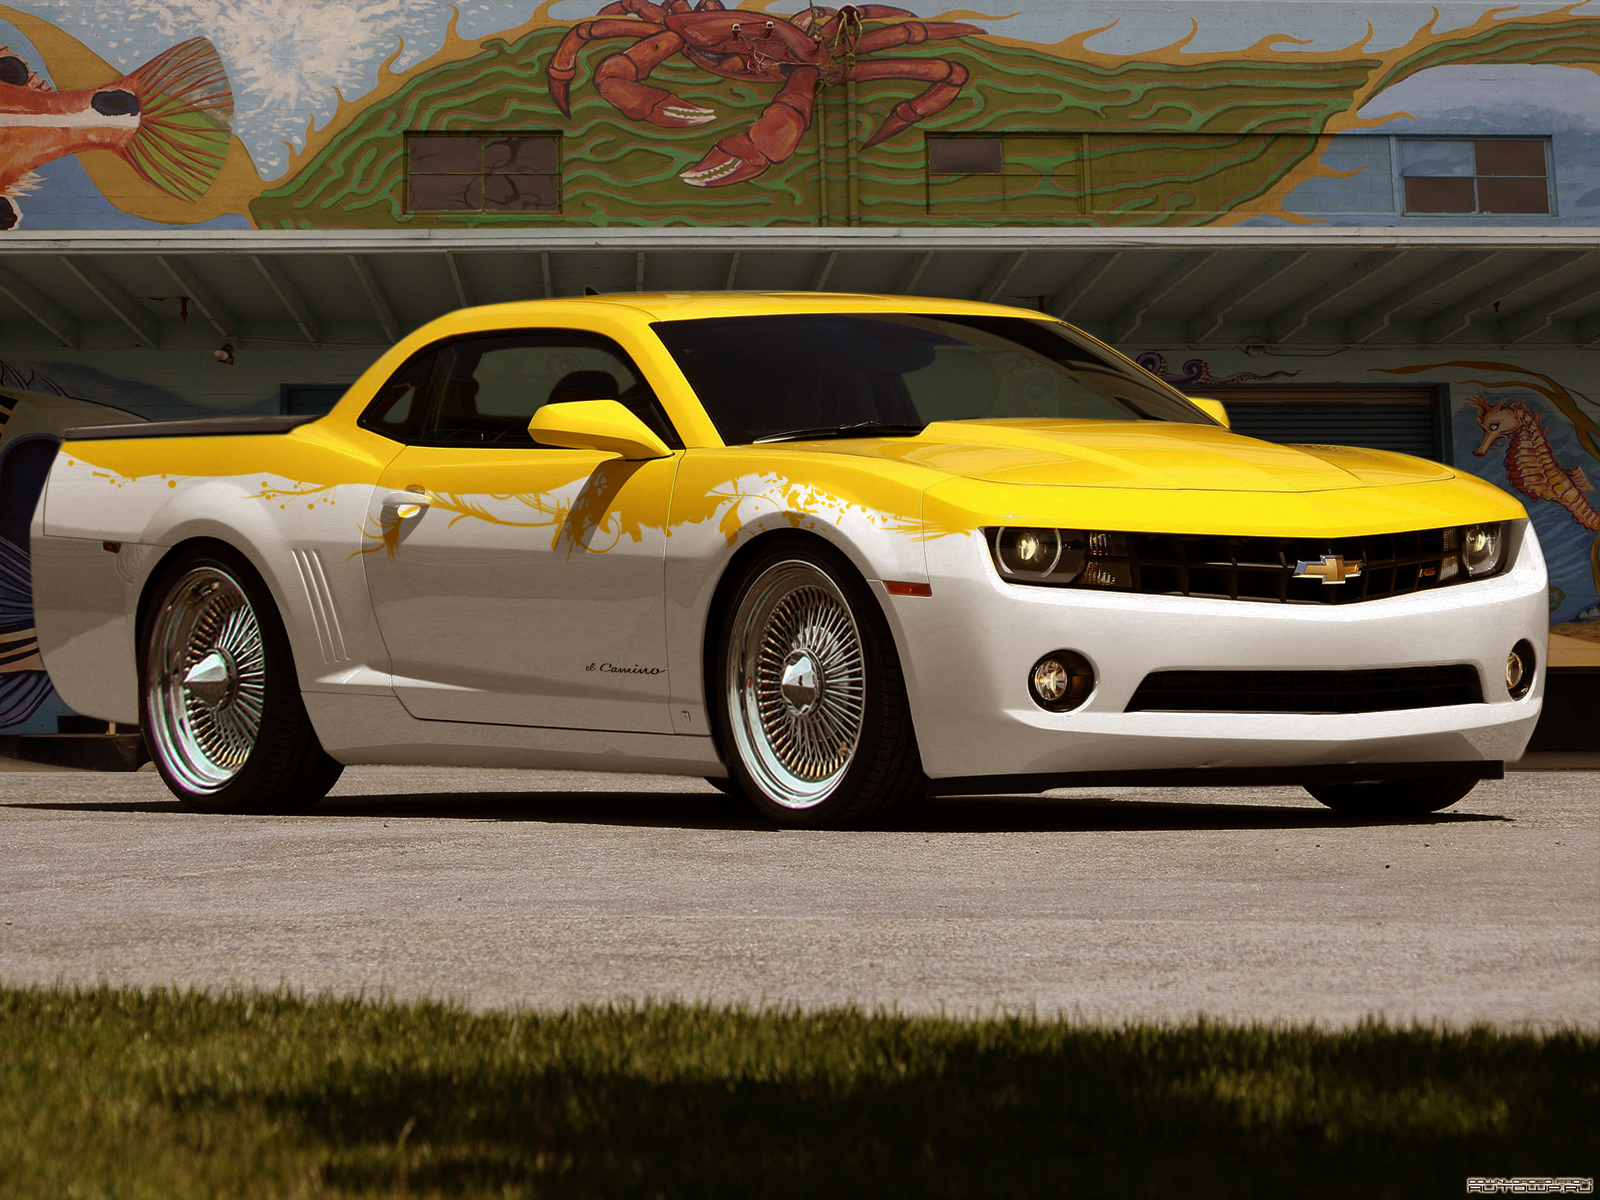 2010 Chevrolet El Camino By Degraafm On Deviantart